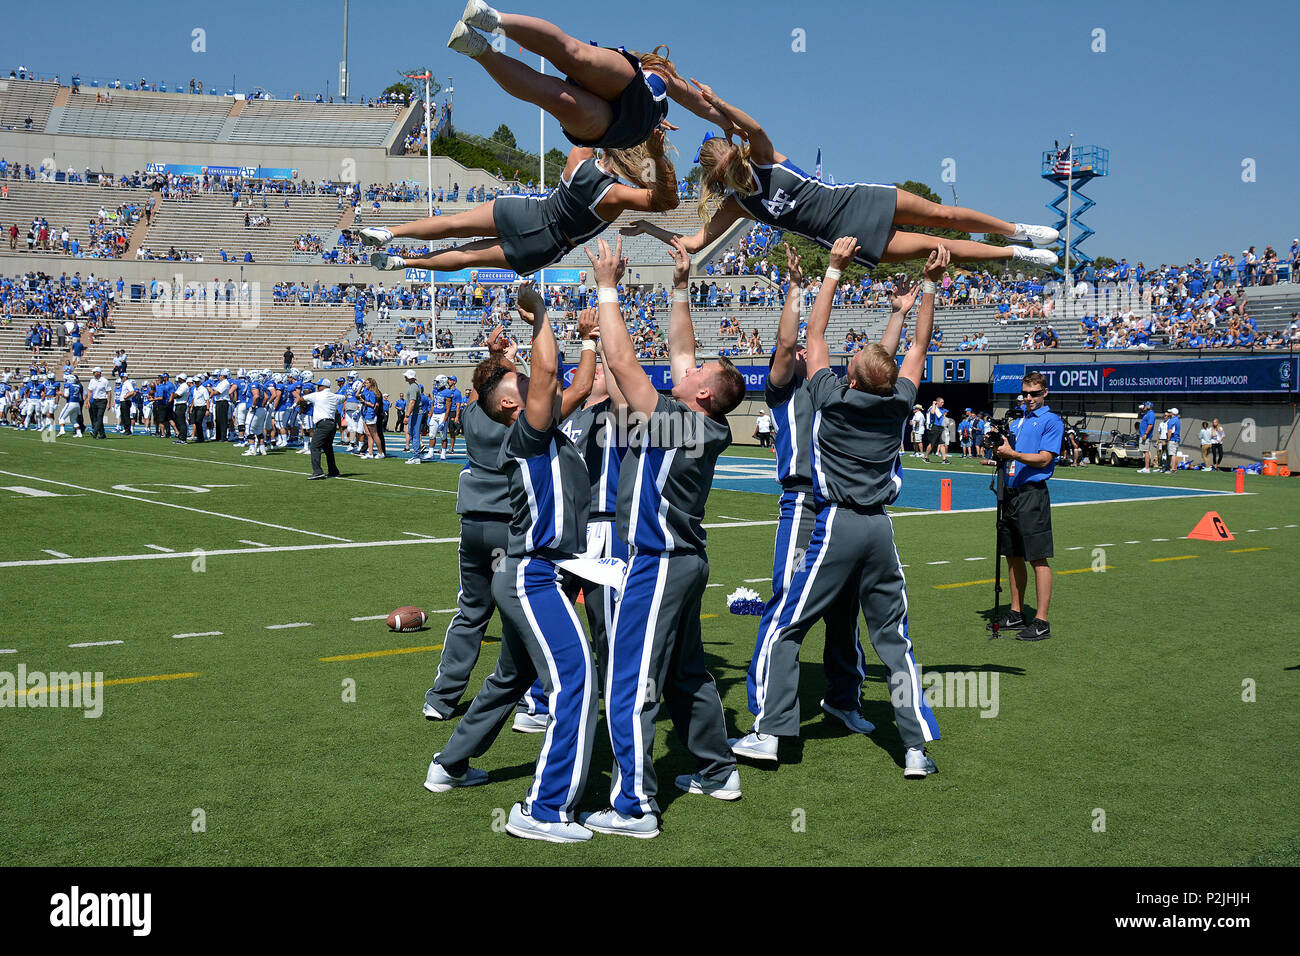 The Air Force Cheer Team entertains the crowd during pre-game warmups before the Air Force vs. Virginia Military Institute football game at Falcon Stadium at the U.S. Air Force Academy, Colo., Sept. 2, 2017. The Falcons defeated the Keydets 62-0, moving to 11-0 in season openers under head coach Troy Calhoun. (U.S. Air Force photo/ Jason Gutierrez) (released) - Stock Image